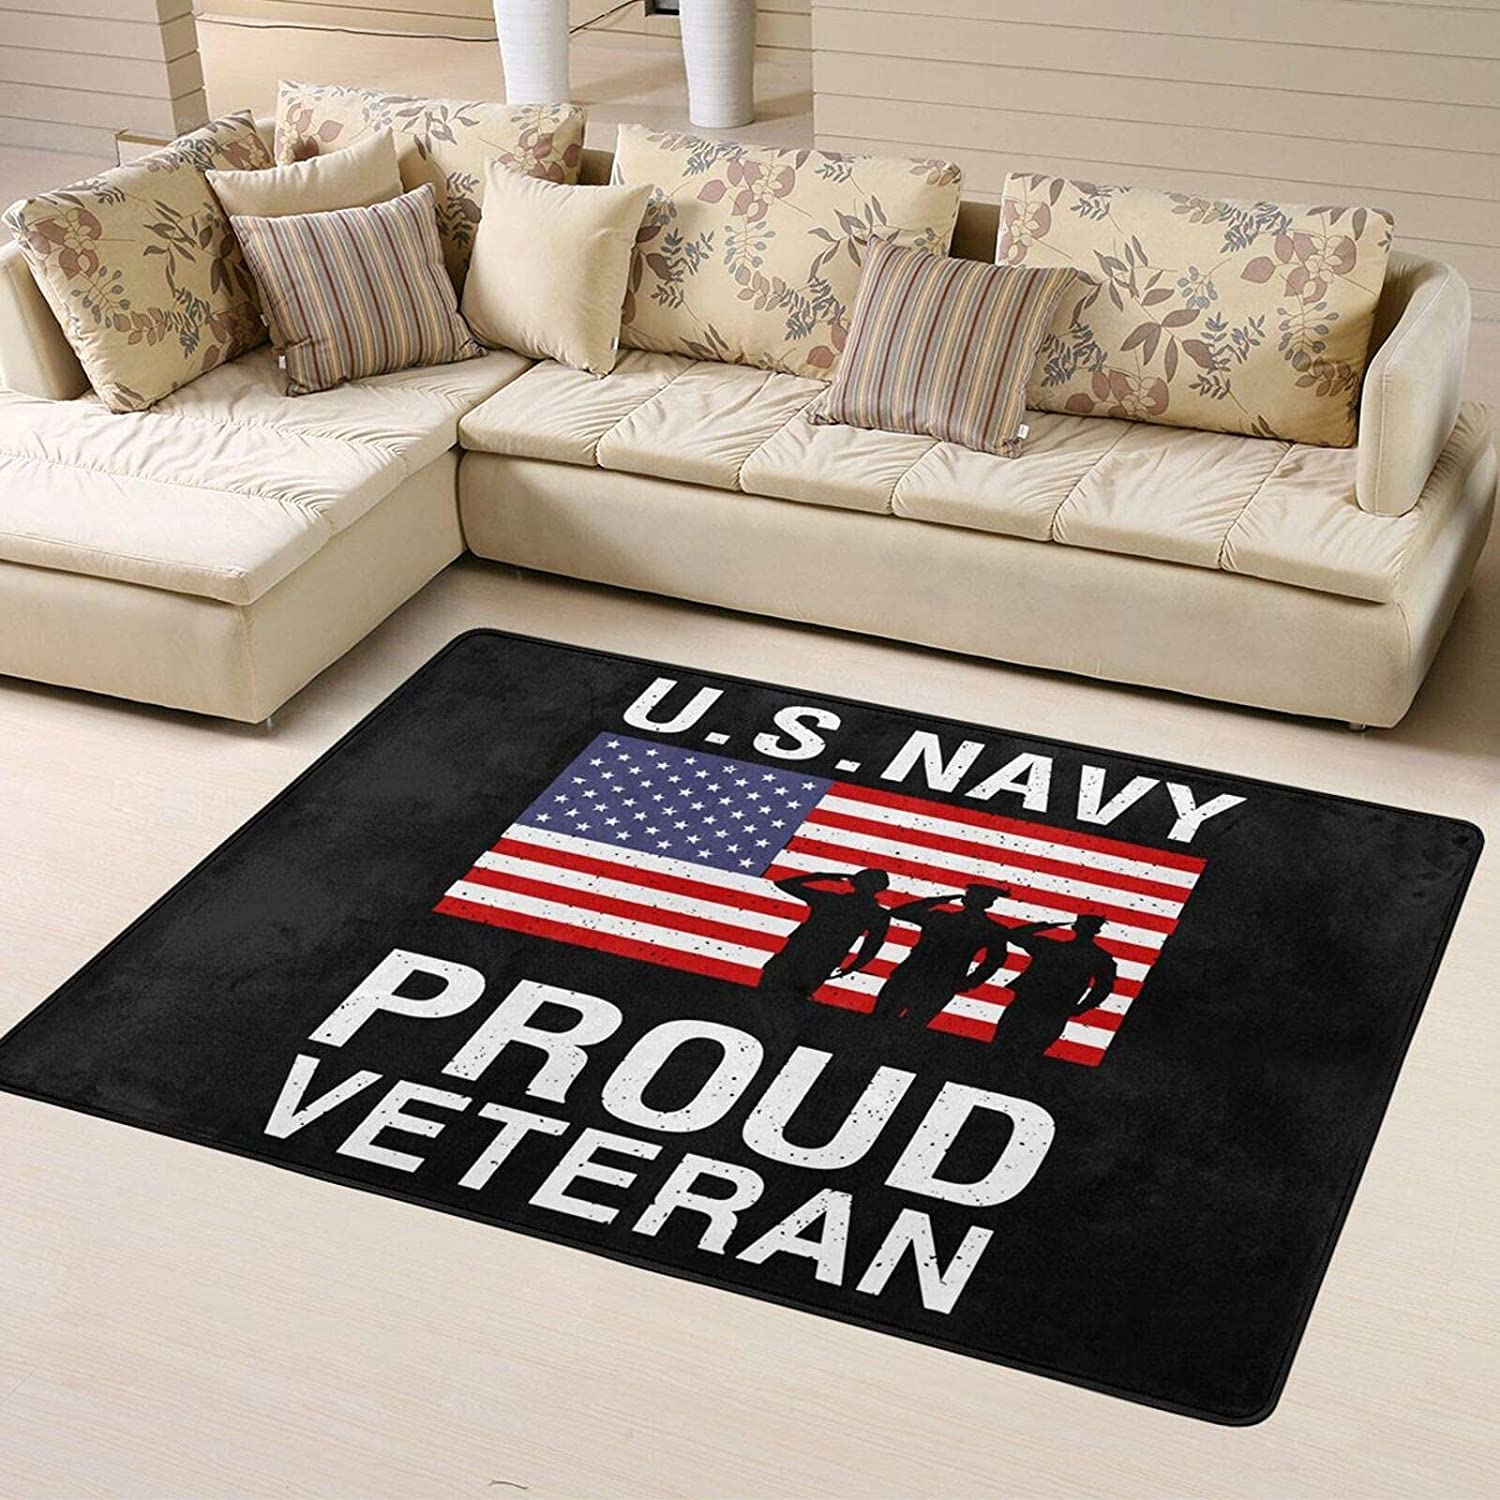 Us Navy Proud Veteran Super Ranking TOP16 Decorati Rugs Same day shipping Personalized Home Soft